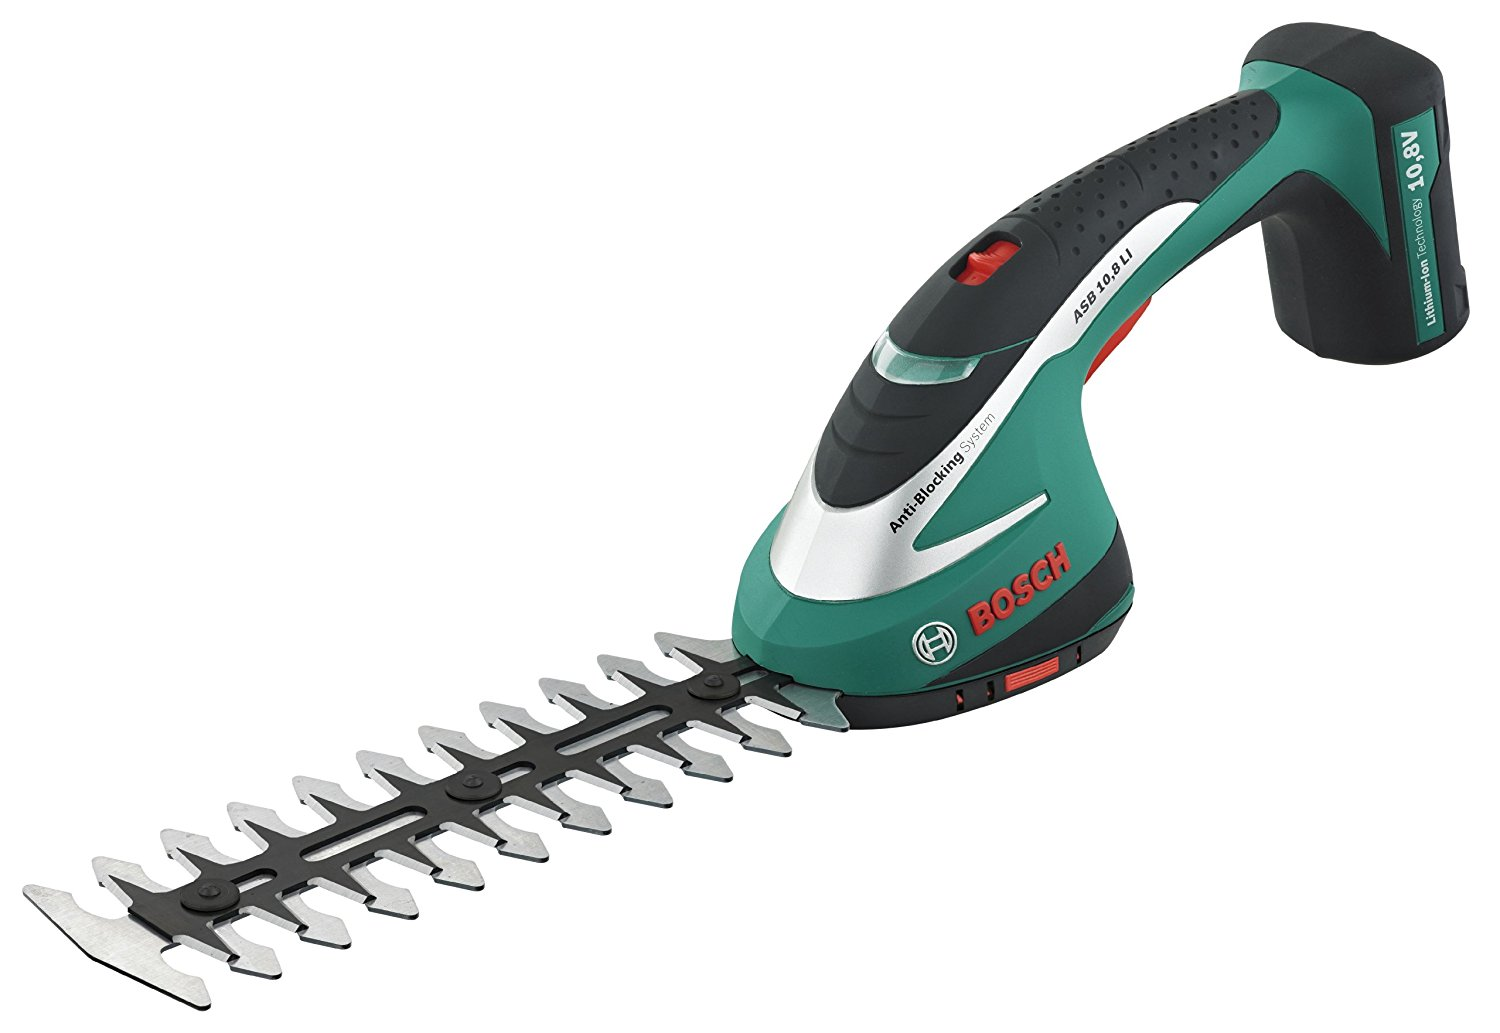 Bosch ASB 10.8 Li Cordless Shrub Trimmer